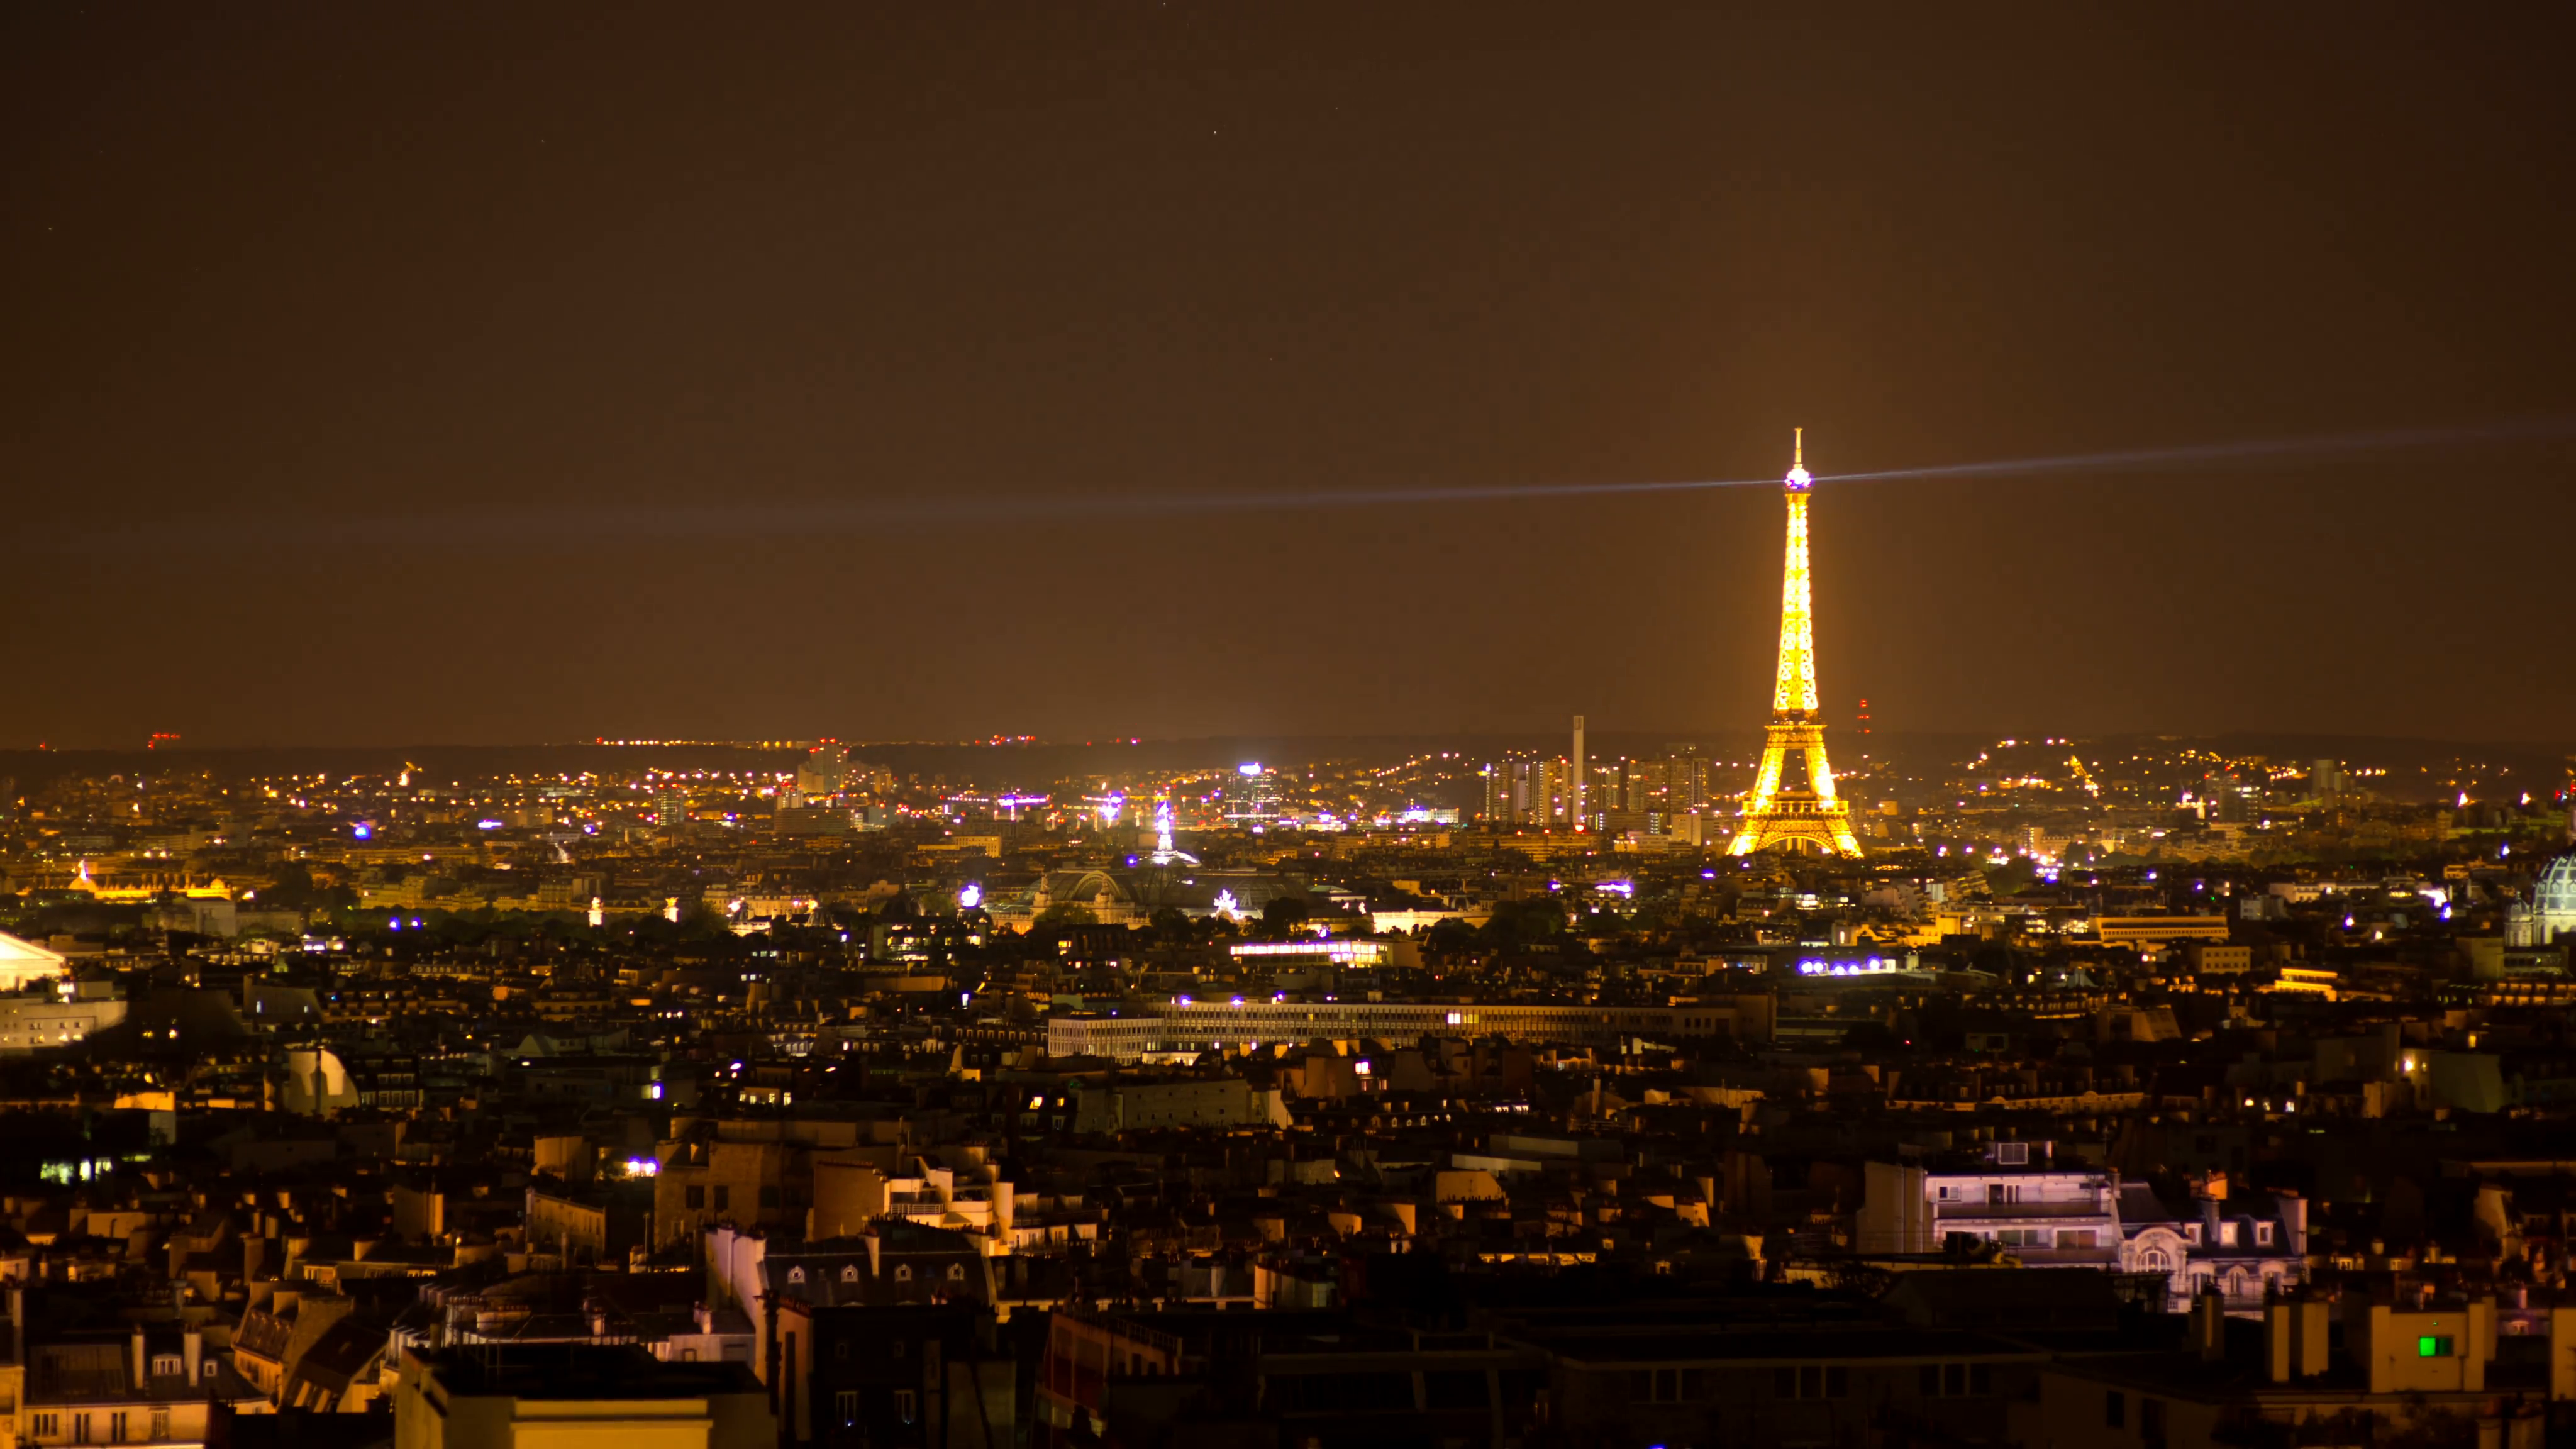 timelapse of the paris skyline at ngiht with the bright laser beam ...